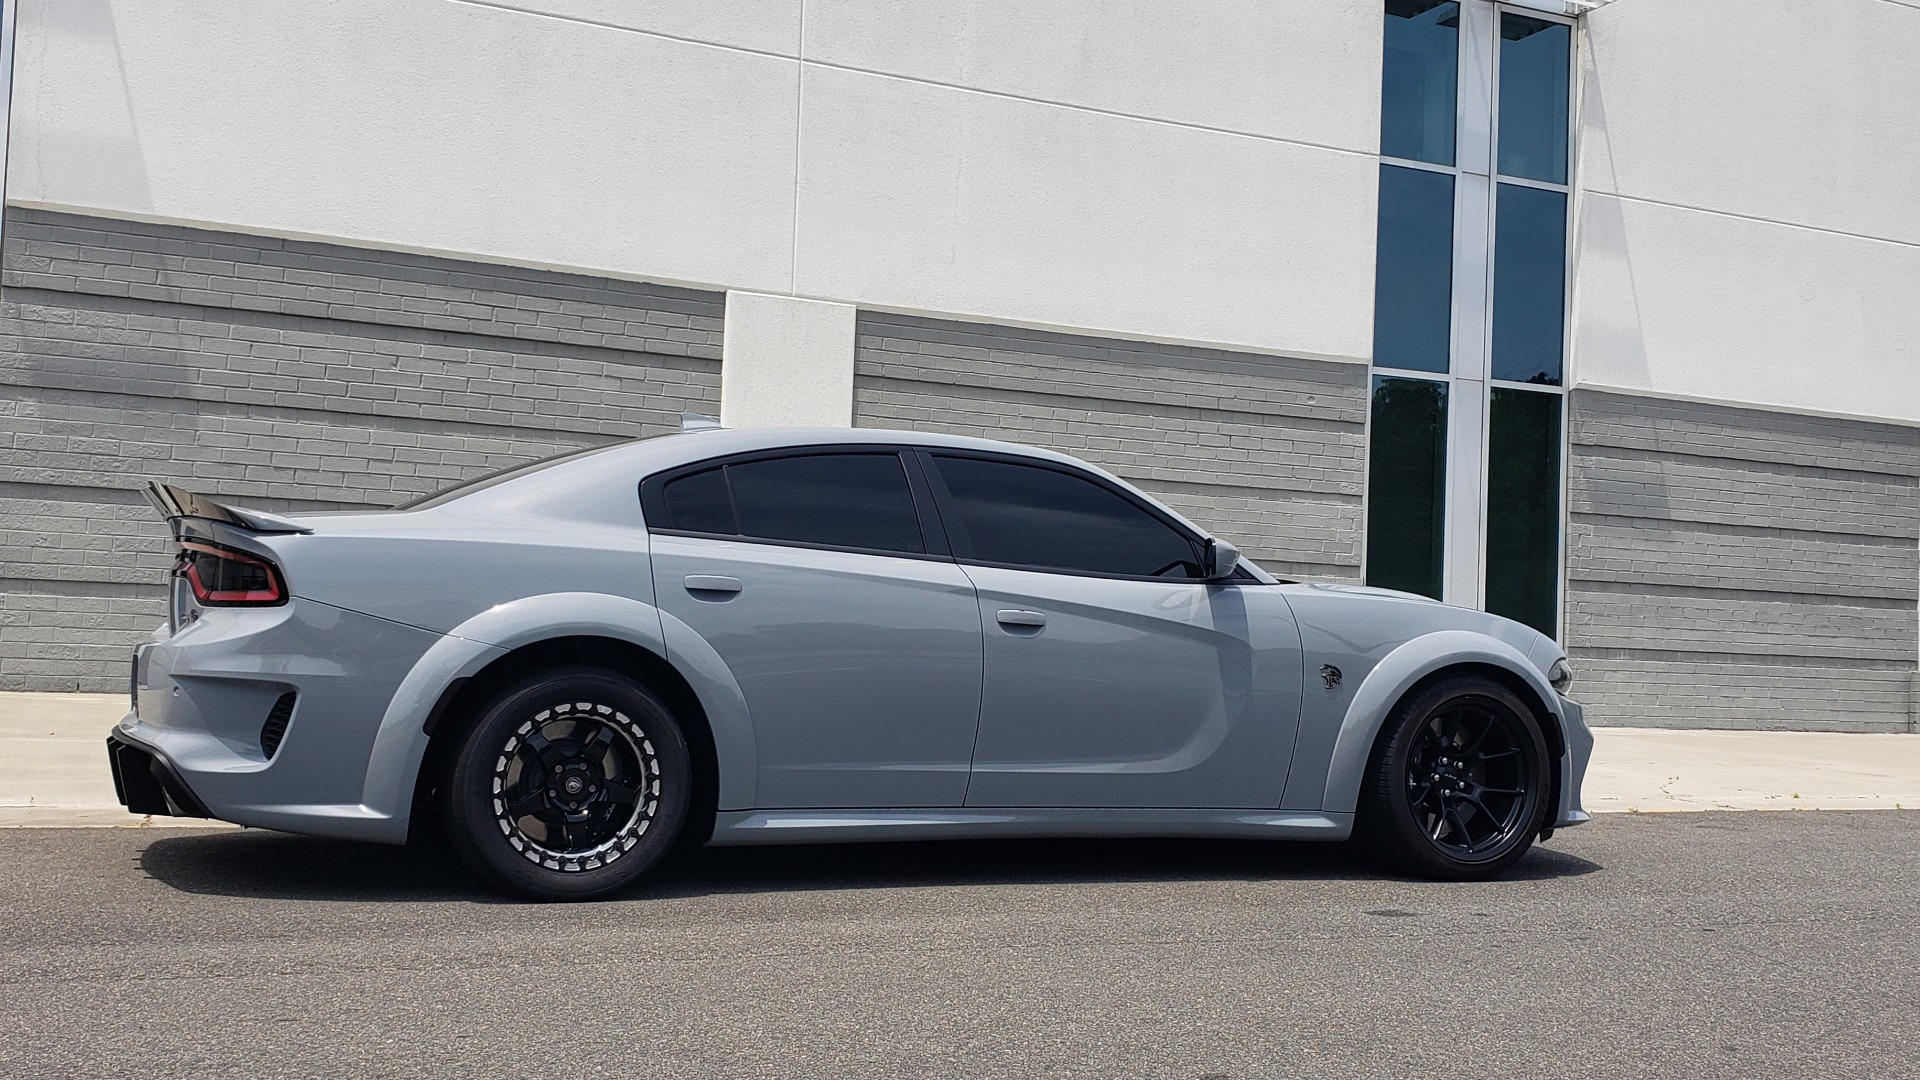 Used 2021 Dodge CHARGER SRT HELLCAT REDEYE WIDEBODY / CUSTOM TUNED 1100BHP for sale Sold at Formula Imports in Charlotte NC 28227 8